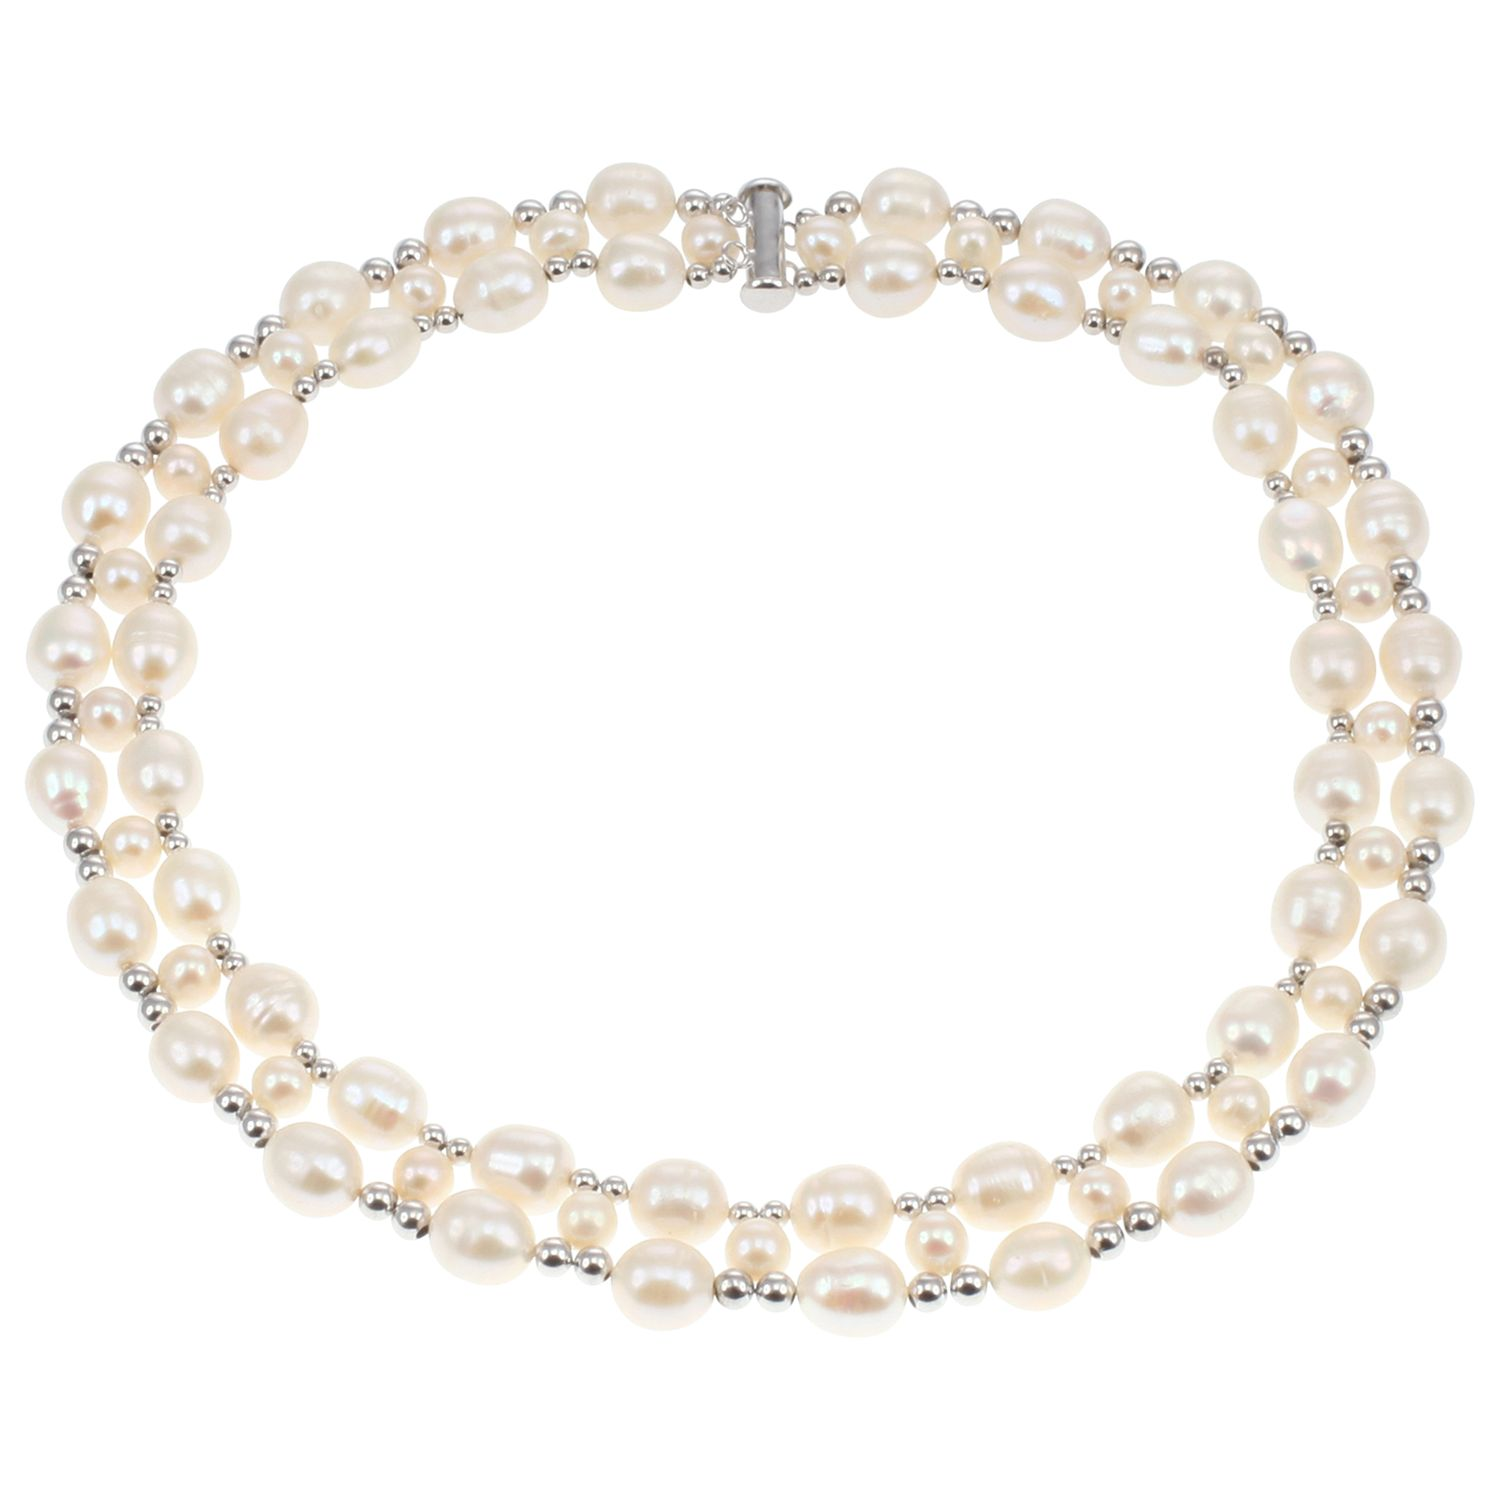 Lido Pearls Lido Pearls Two Row Freshwater Pearl and Bead Collar Necklace, Silver/White